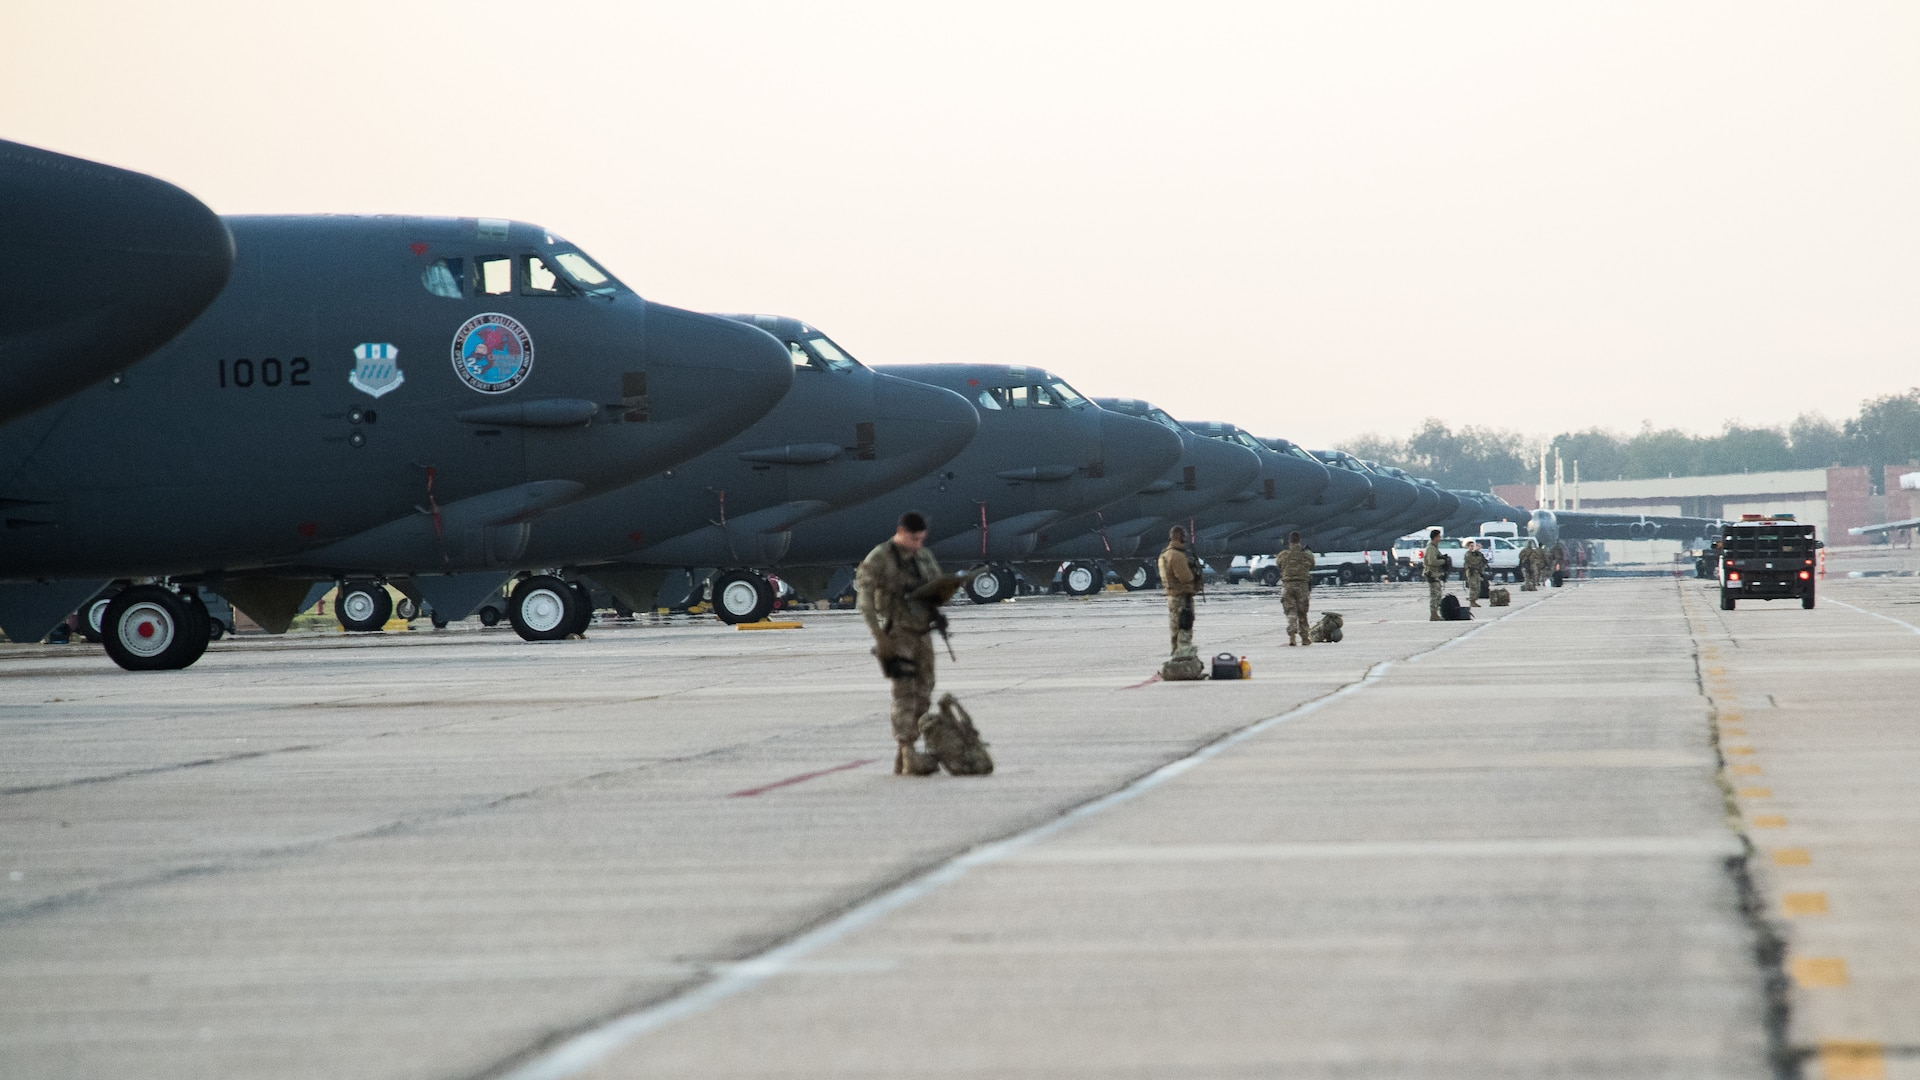 Airmen assigned to the 2nd Security Forces Squadron stand guard in front of B-52H Stratofortress aircraft in support of Global Thunder 20 at Barksdale Air Force Base, La., Oct. 22, 2019. Global Thunder is an exercise that focuses on U.S. Strategic Command and component forces' ability to support the geographic combatant commands, deter adversaries and, if necessary, employ forces as directed by the President of the United States. (U.S. Air Force photo by Senior Airman Tessa B. Corrick)